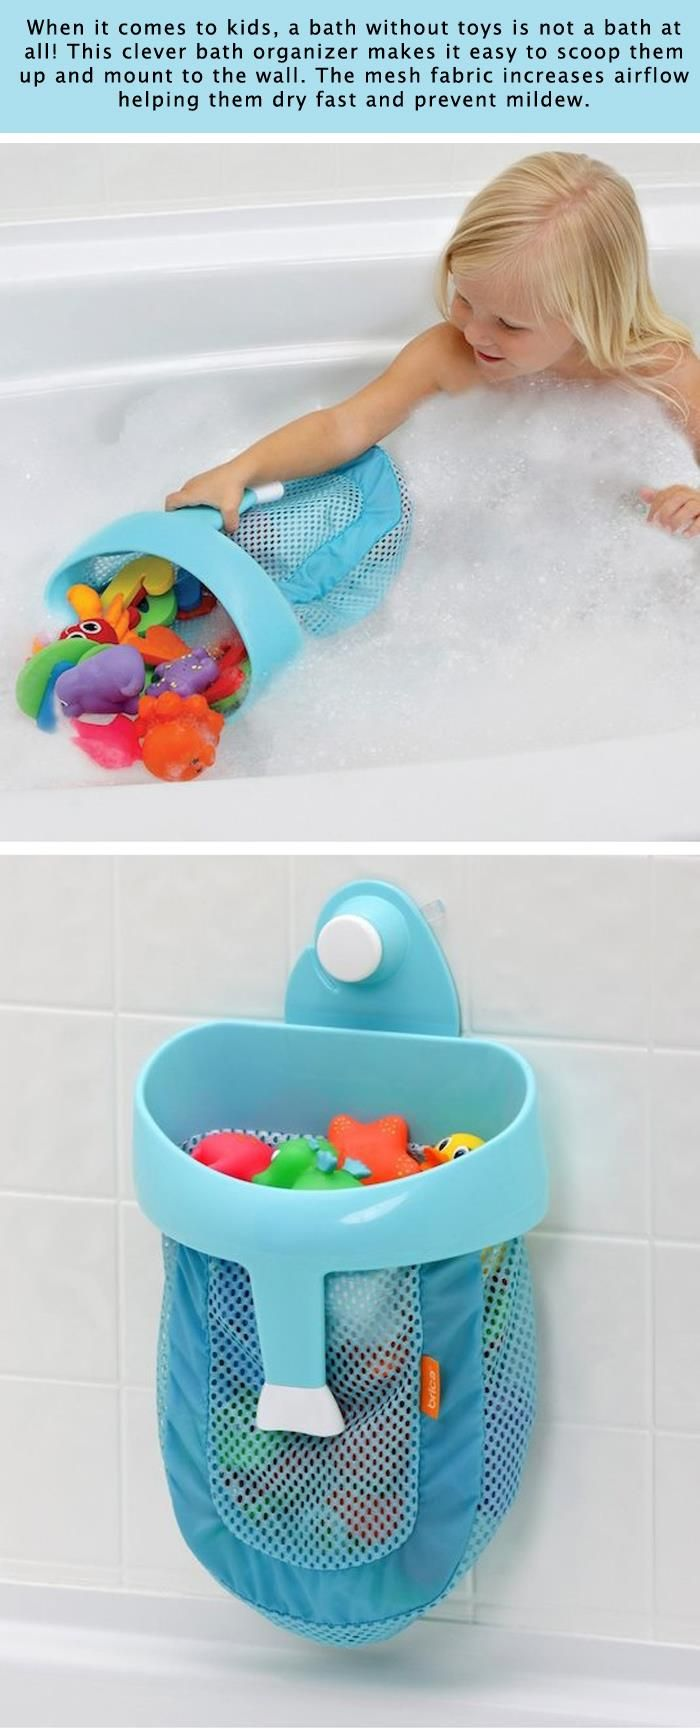 Simple Organizing Products That Are Borderline Genius - 12 Pics ...